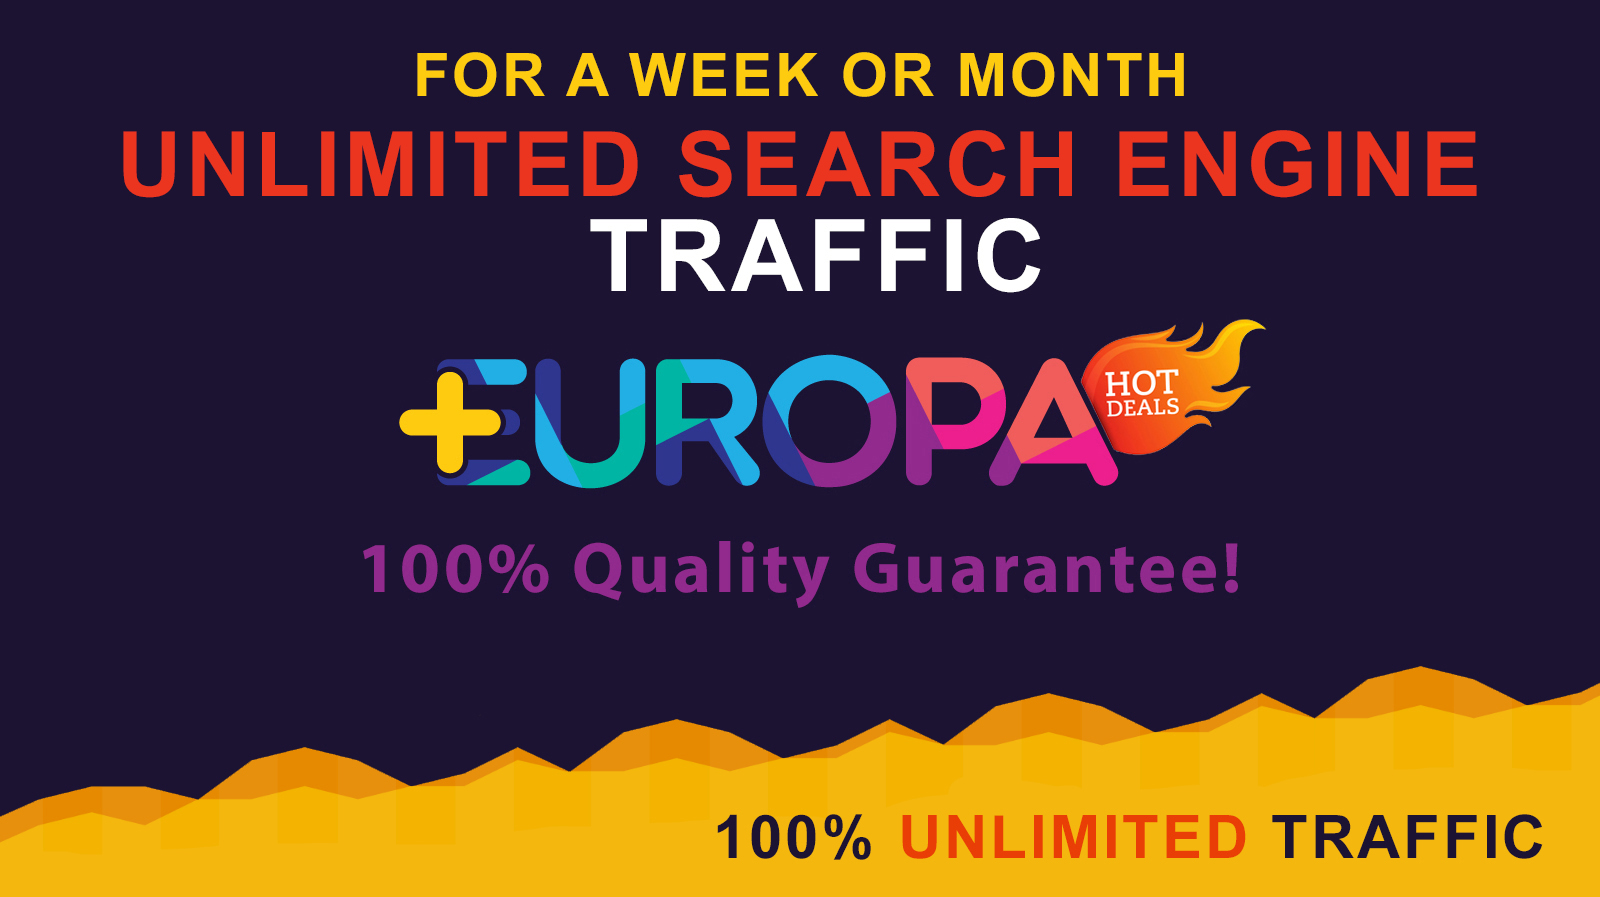 UNLIMITED SEARCH ENGINE TRAFFIC FOR A WEEK OR MONTH PLUS BONUS